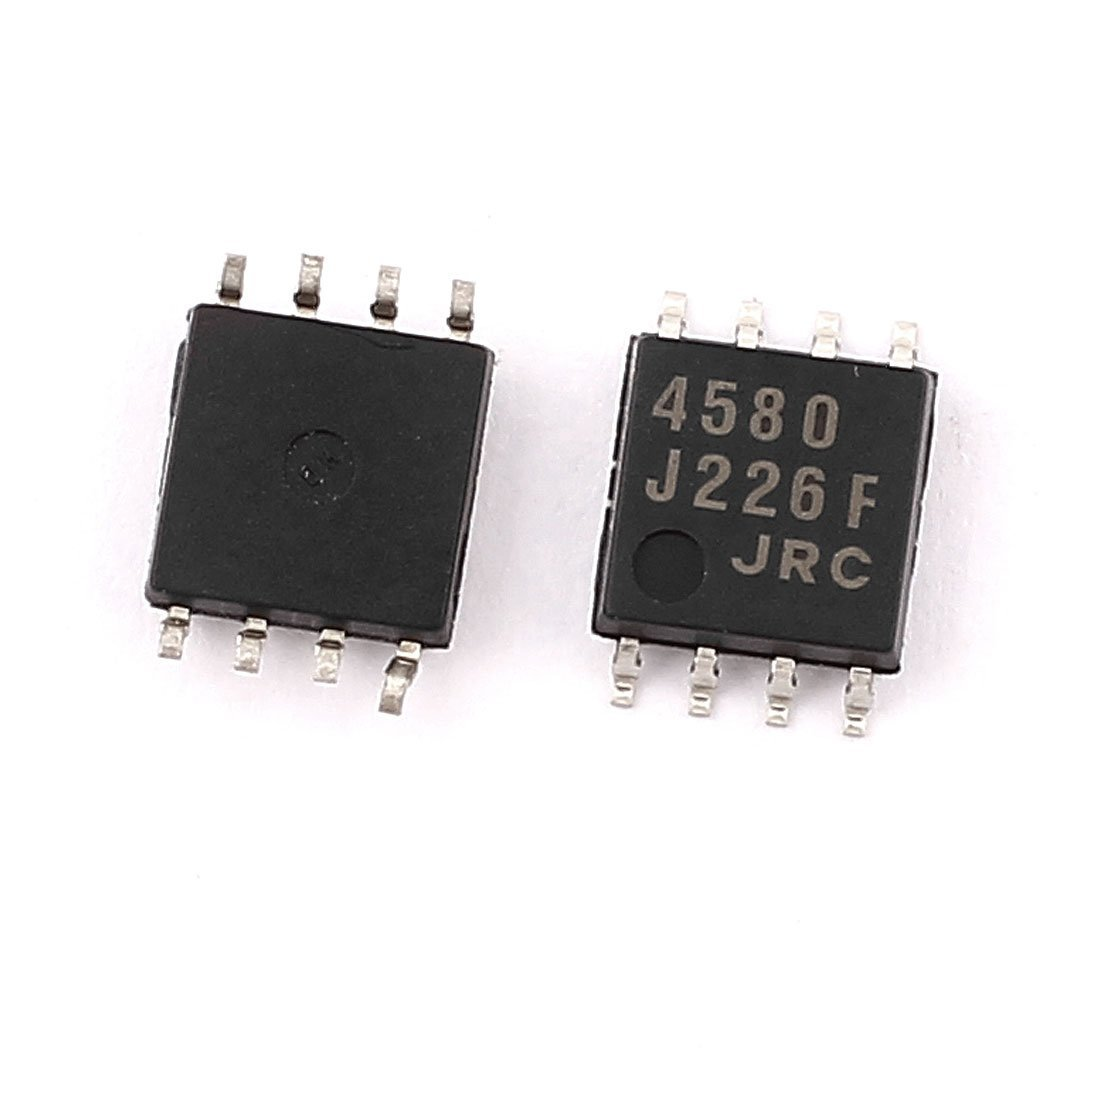 Jrc4580 8 Pin Pcb Surface Mount Smd Smt Ic Lcd Power Chip 2pcs 24vdc To 12vdc Using Lm317t Questions Electronics Forum Circuits Business Industry Science